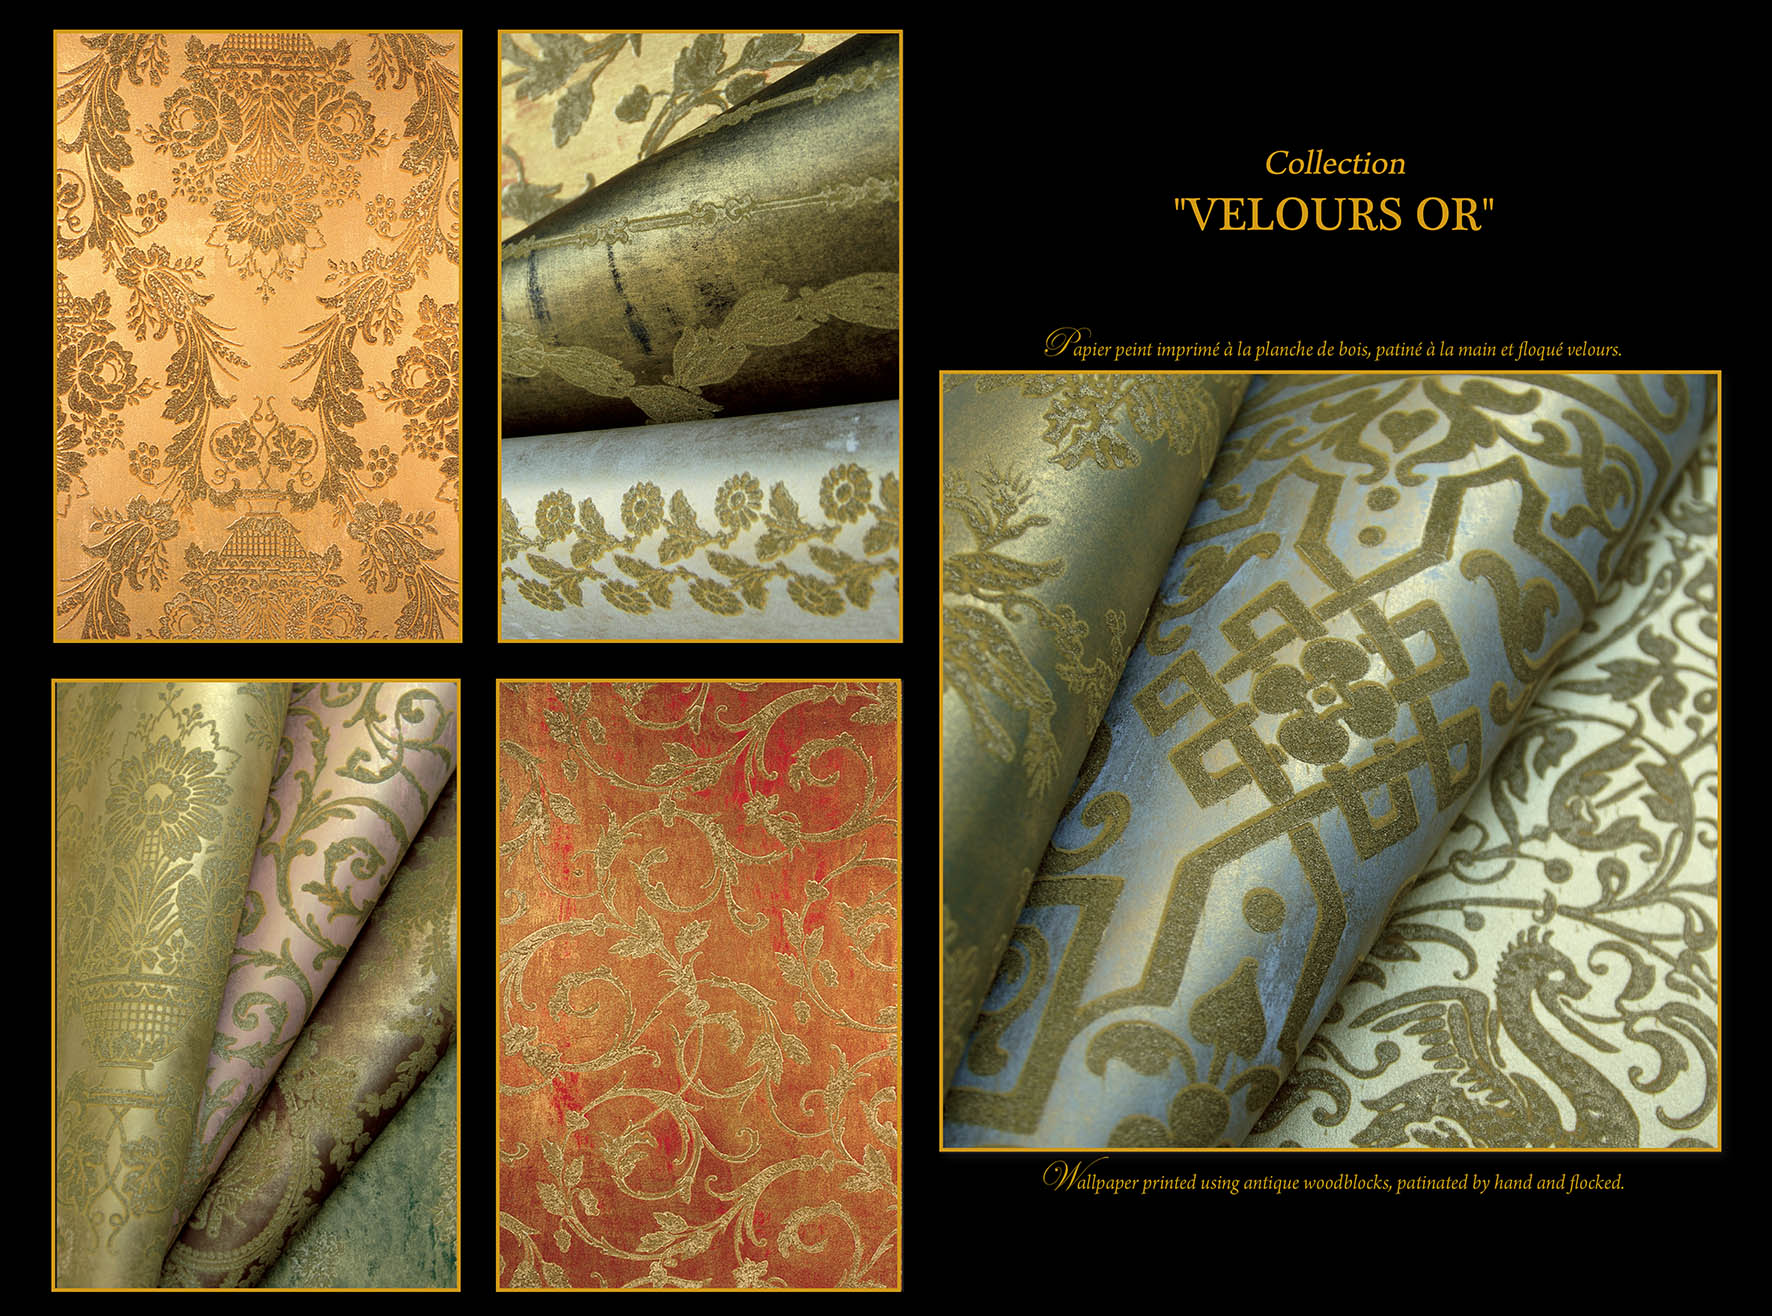 Velours or